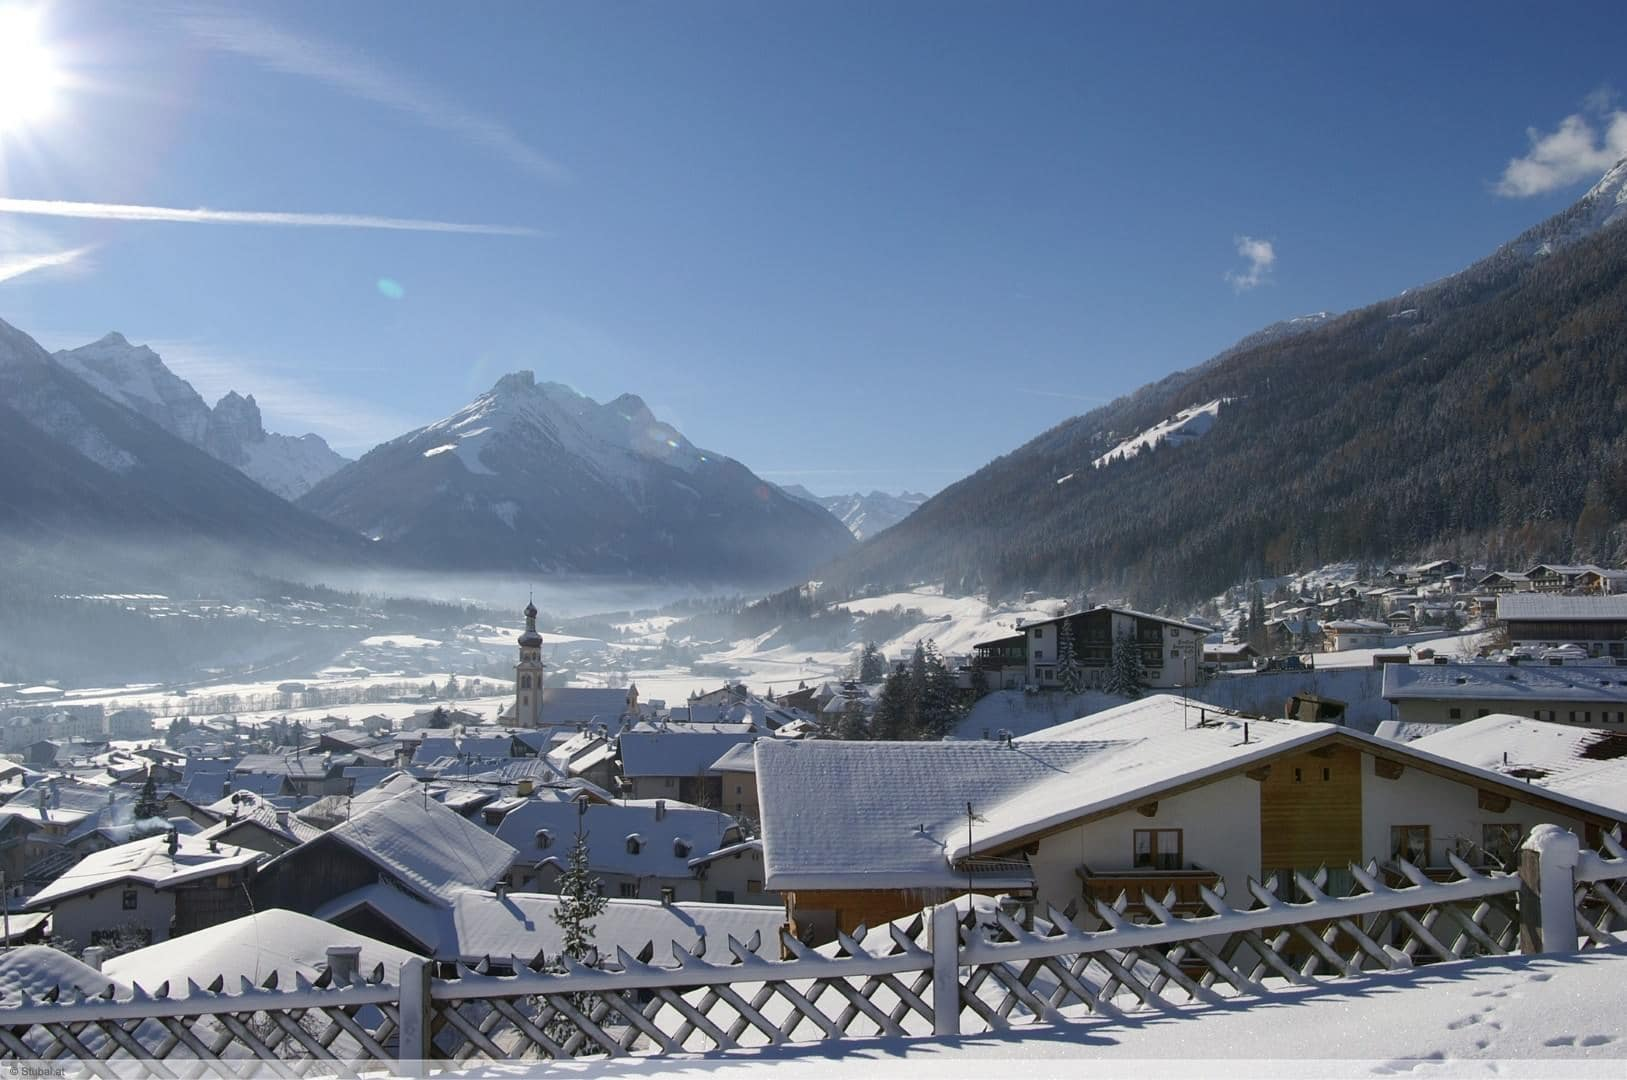 wintersport en aanbiedingen in Fulpmes